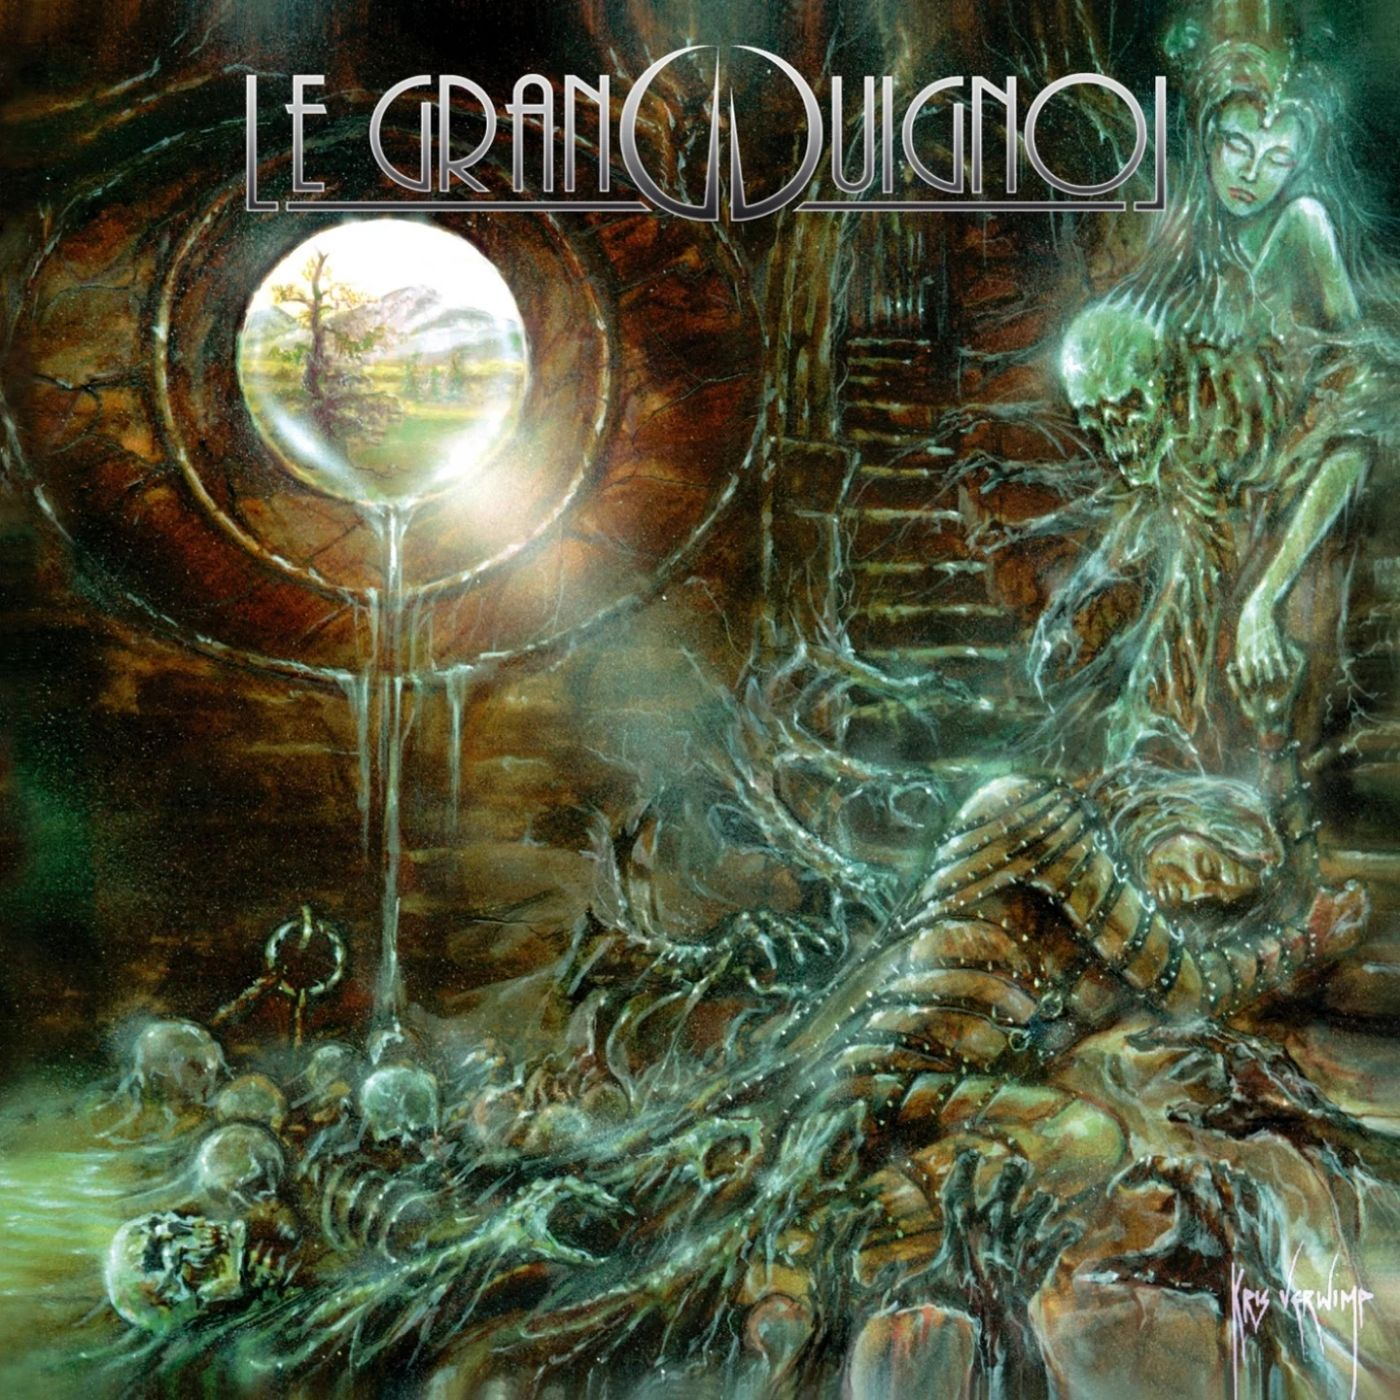 Best Luxembourgish Black Metal album: 'Le Grand Guignol - The Great Maddening'